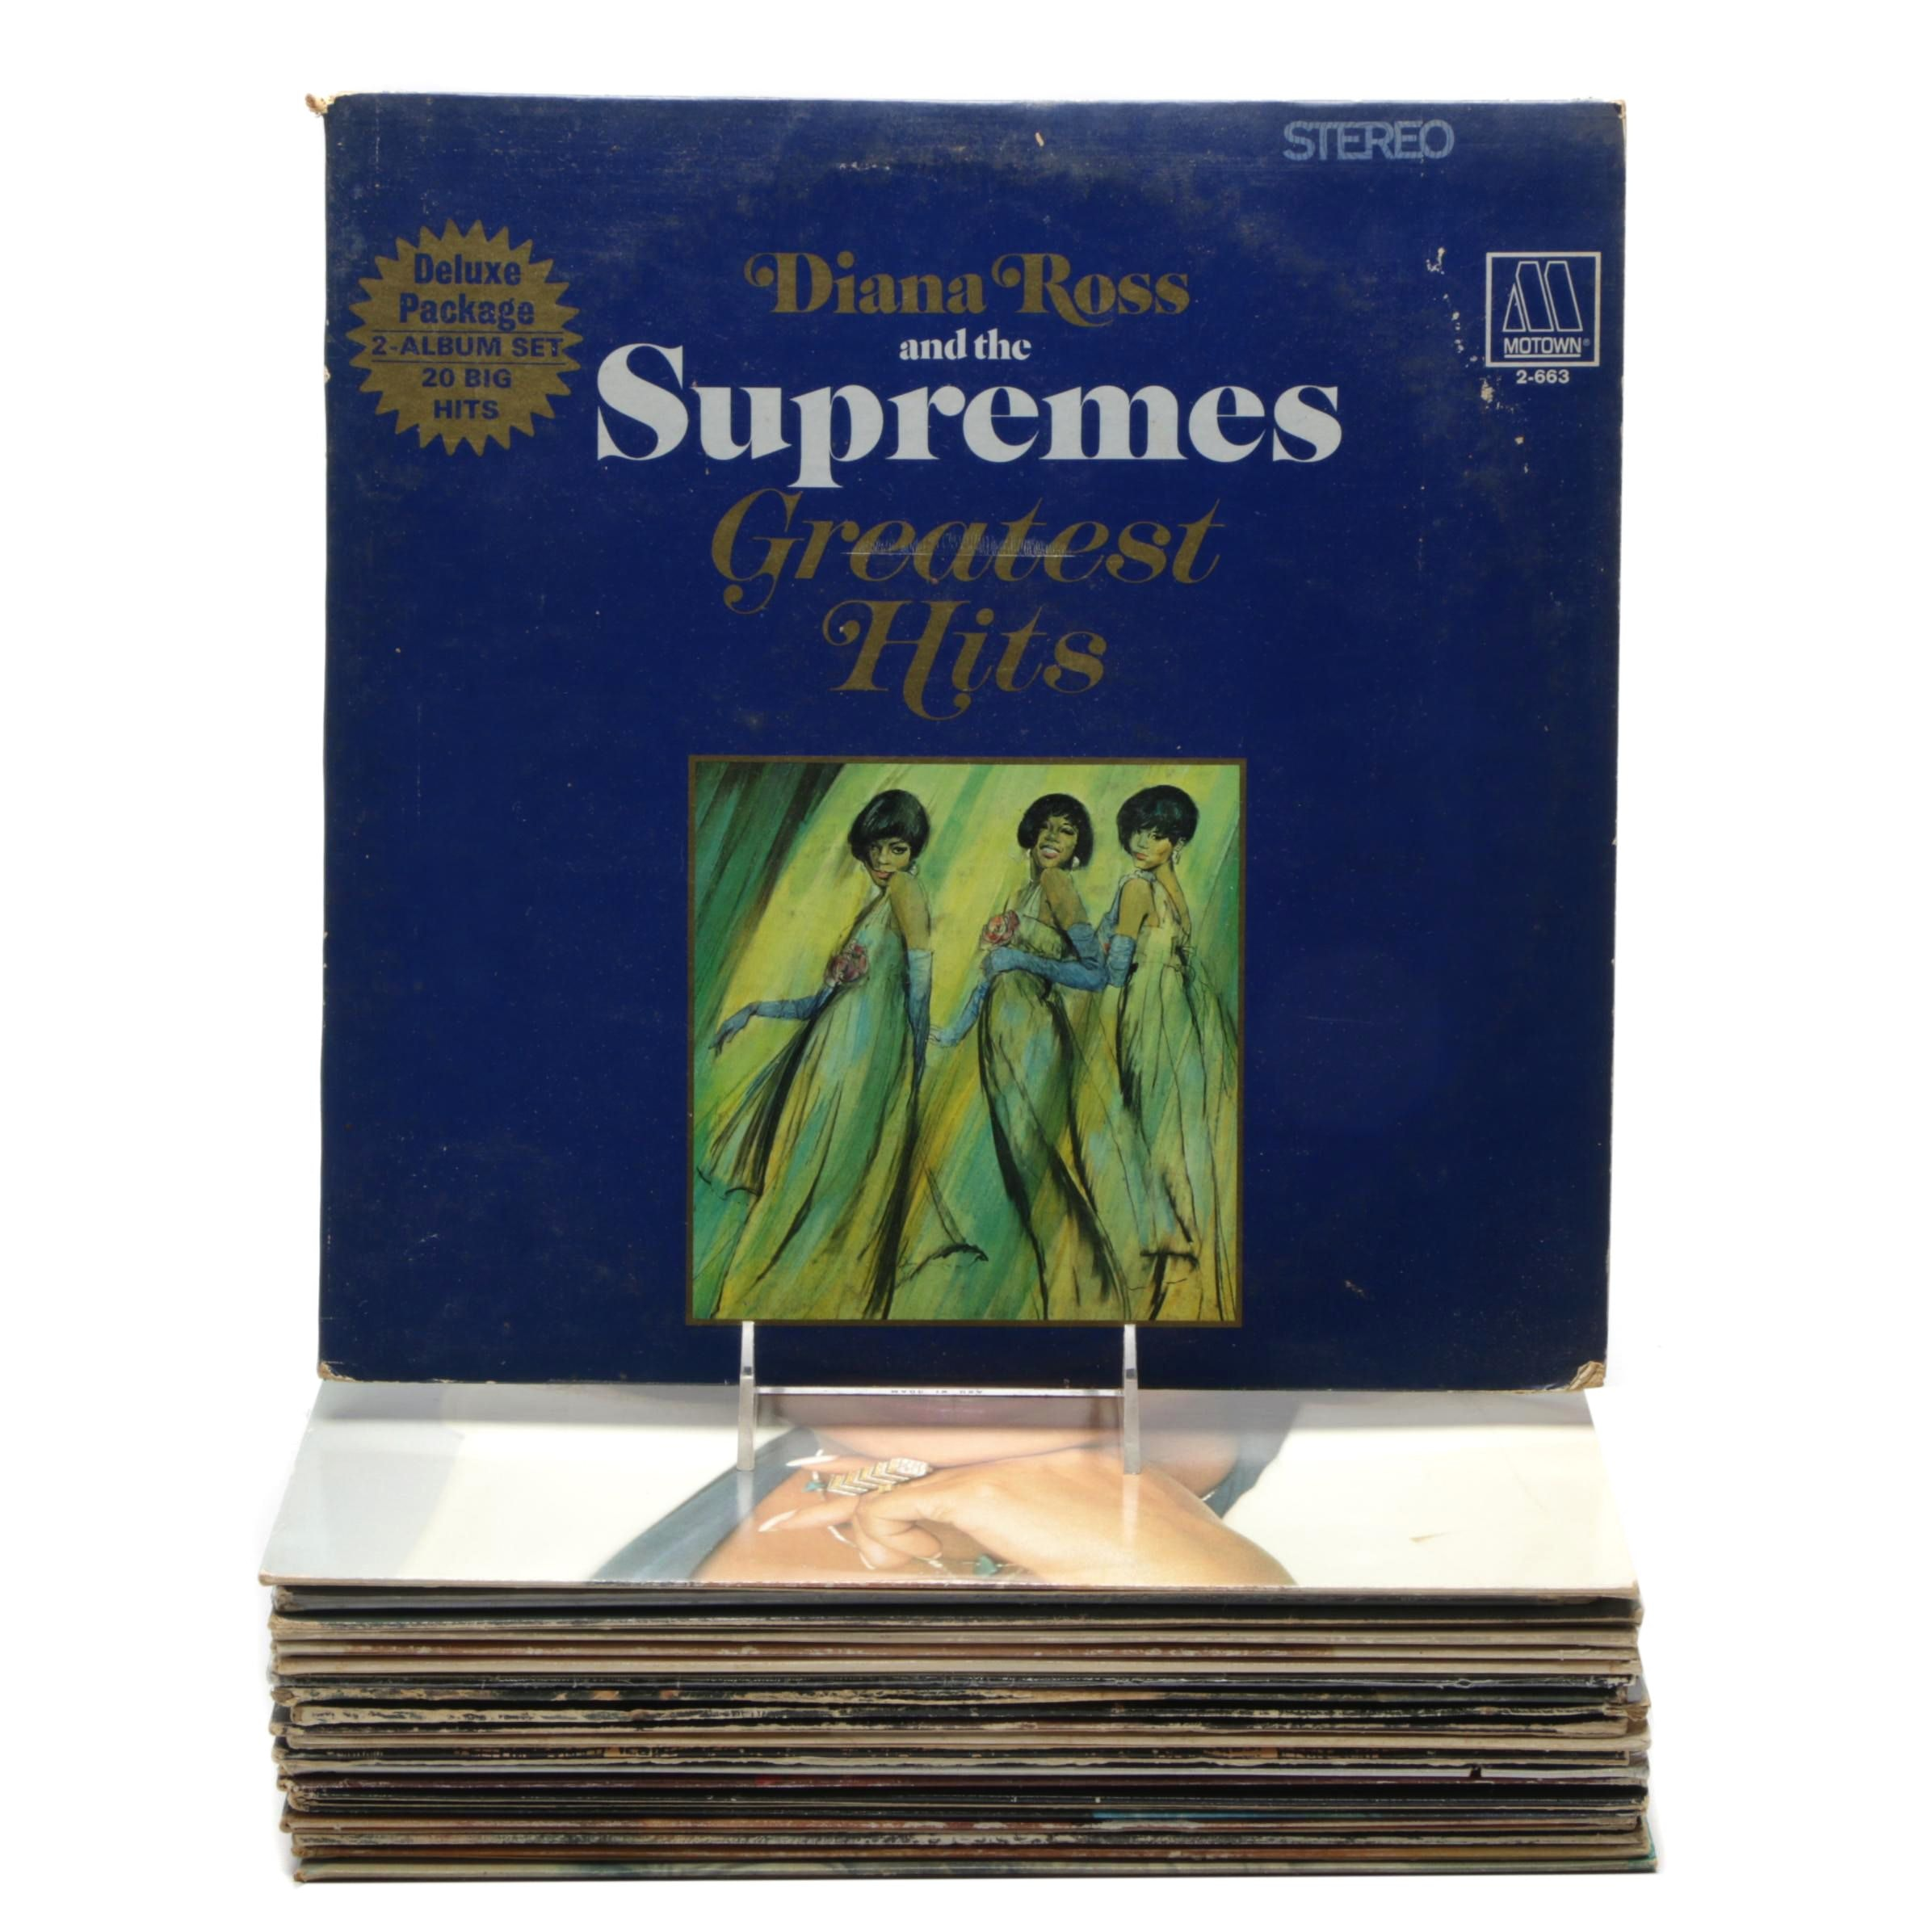 R&B, Soul and Jazz Records Including Aretha Franklin, Robert Flack and More